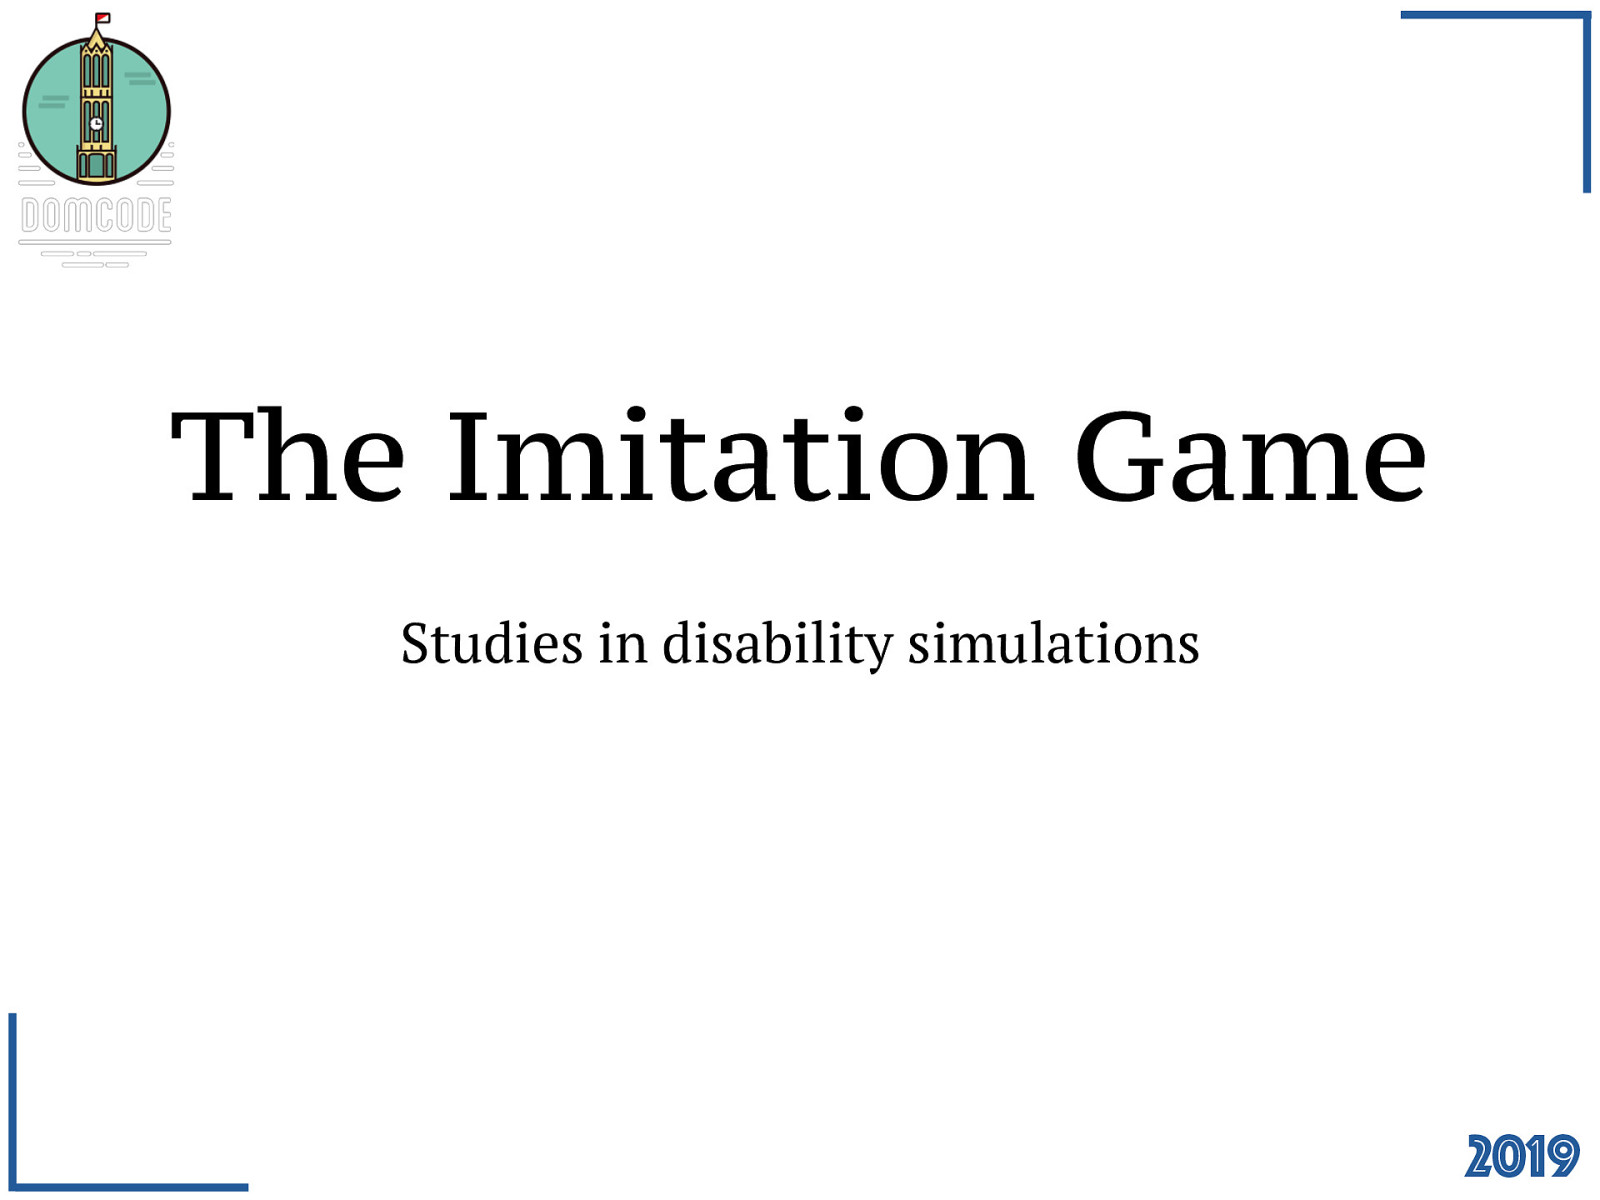 The Imitation Game - studies in disability simulations